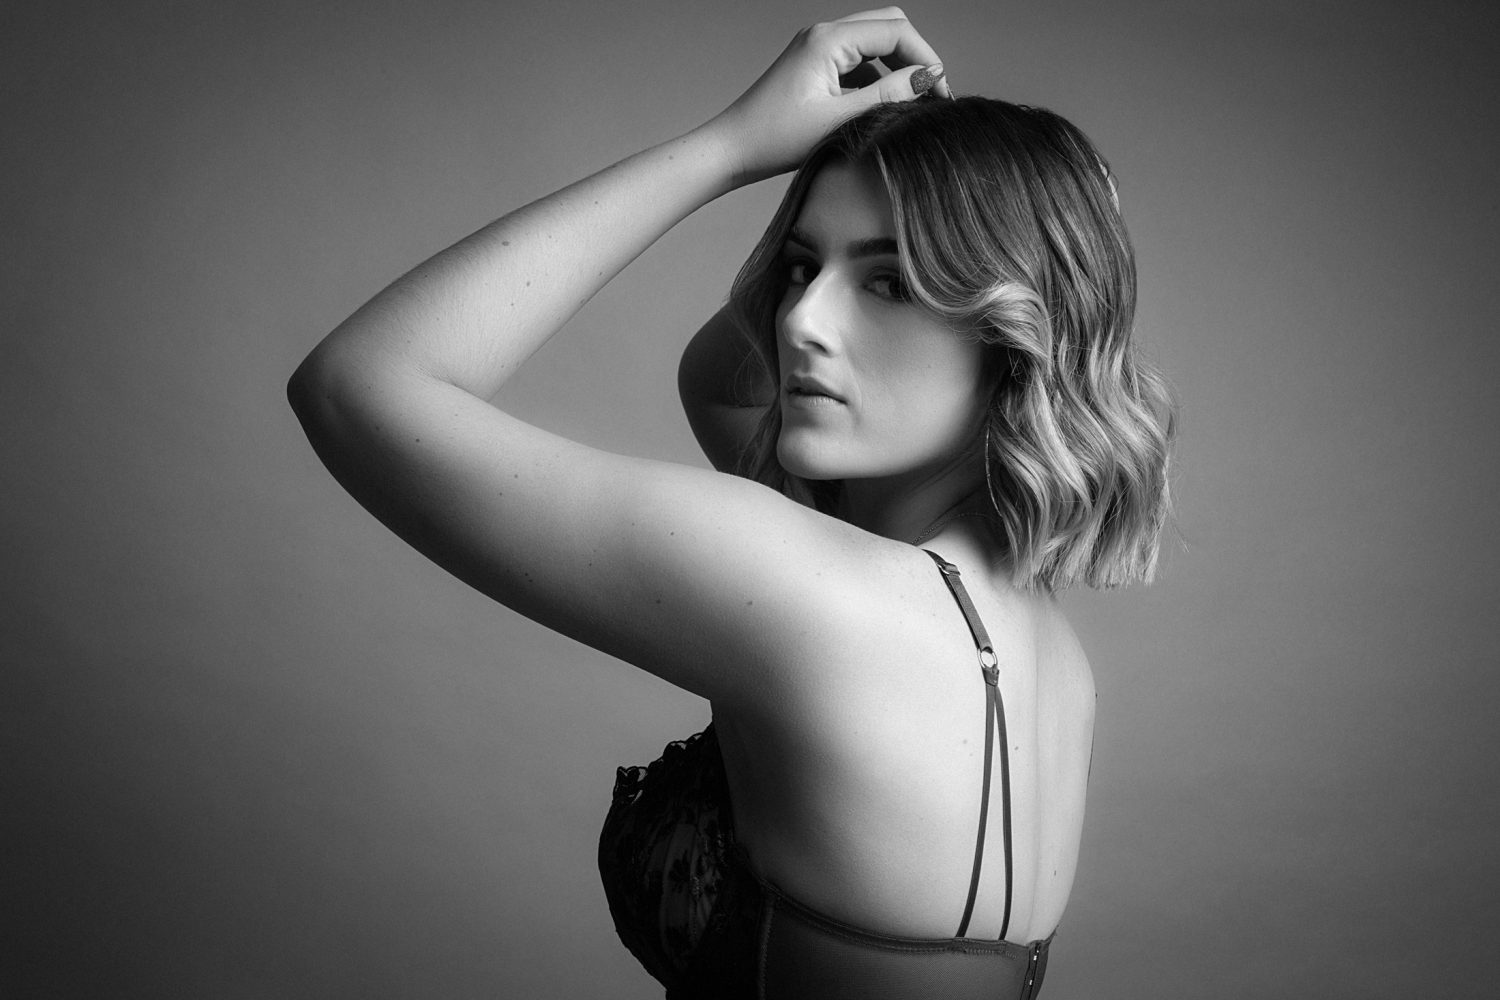 Beautiful woman in artistic black and white boudoir shoot with Perth photographers Cooper Studio